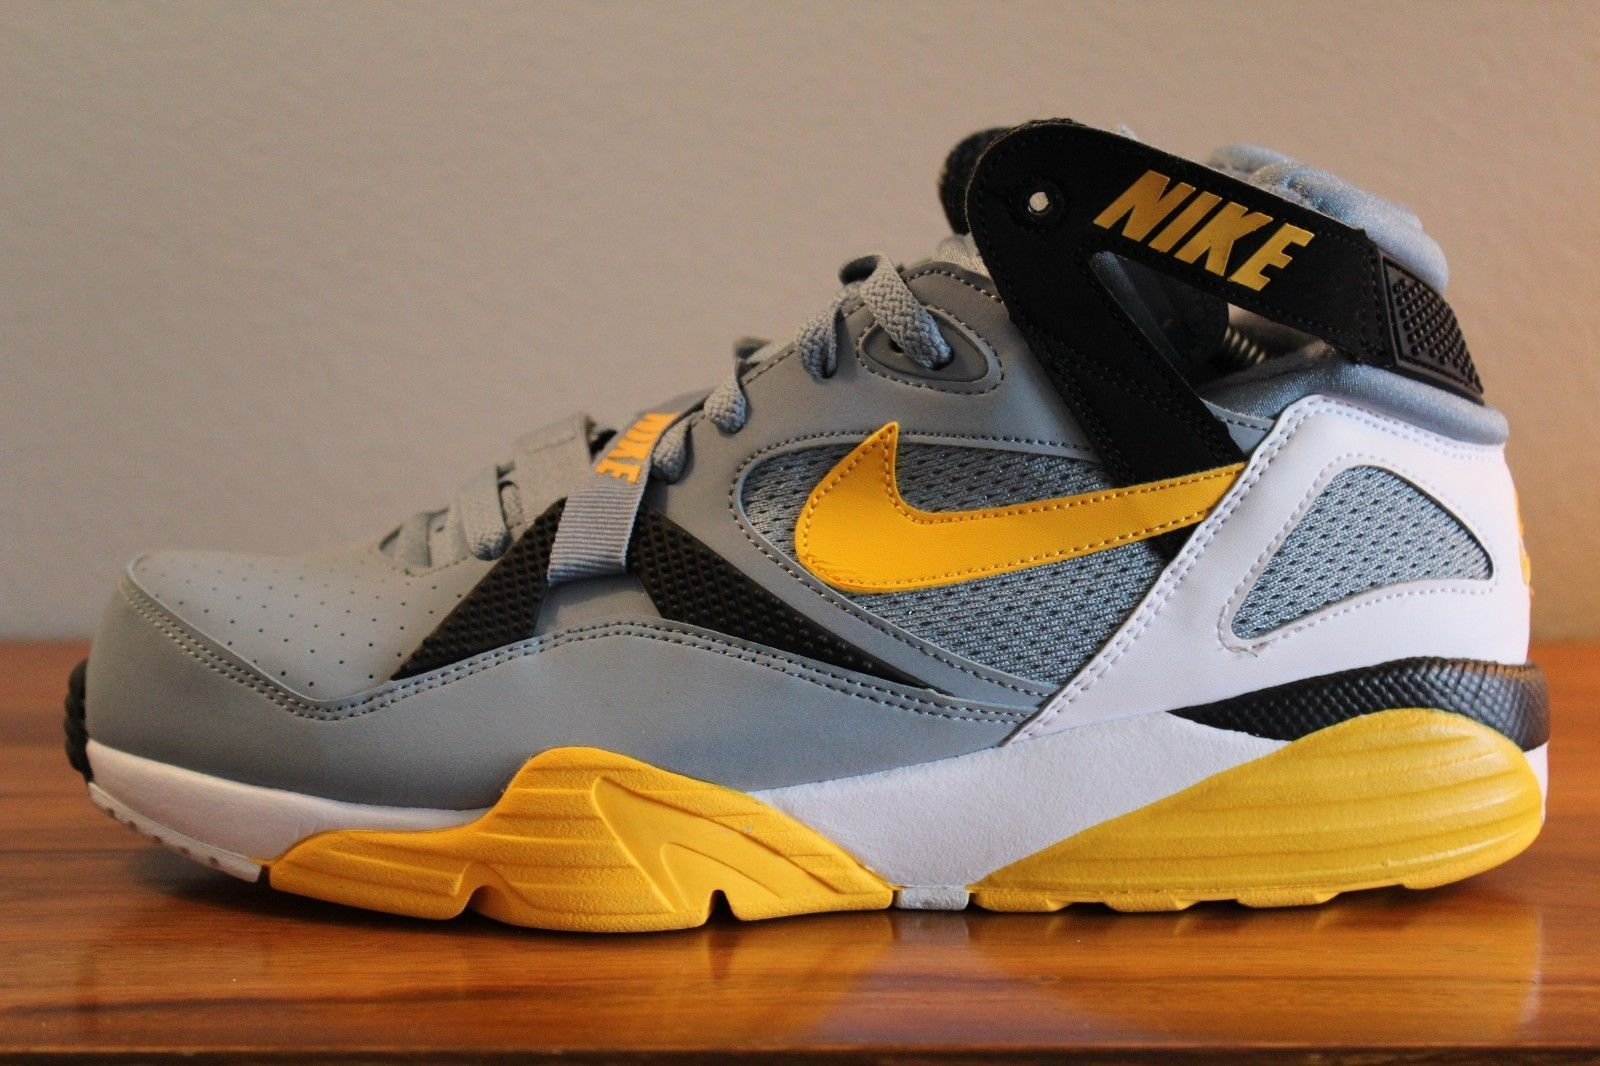 2b3879fd5d ... 13 New Nike Air Trainer max 91 OG Bo Jackson Shoes Size 10 10.5 309748  005 ...